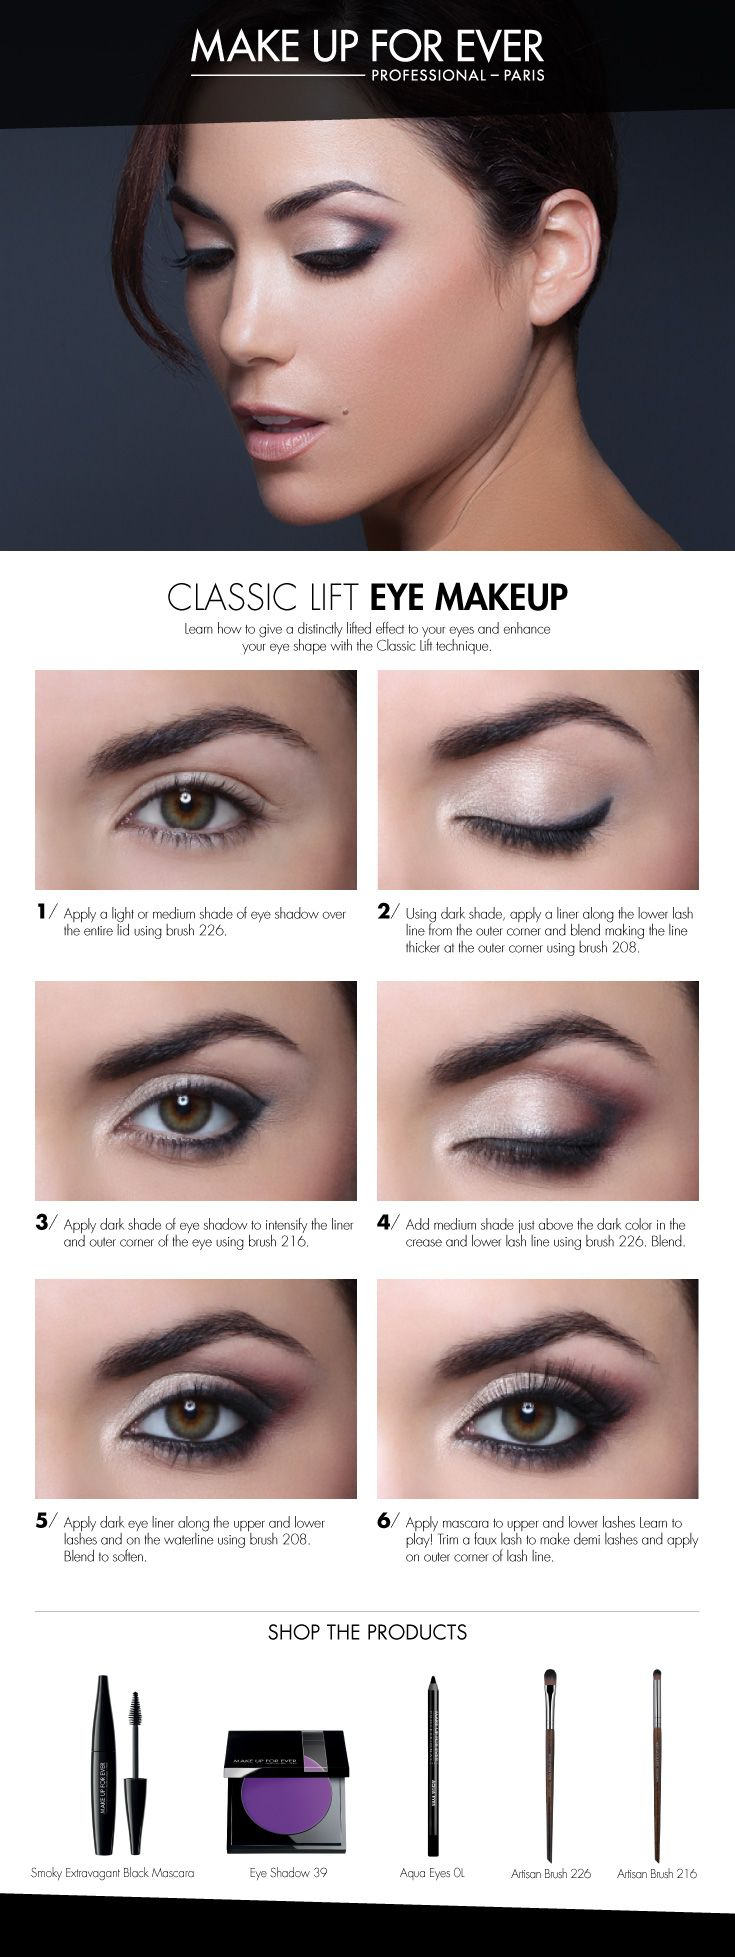 Classic Lift Eye Makeup- gives a distinctly lifted look to your eyes. So pretty!